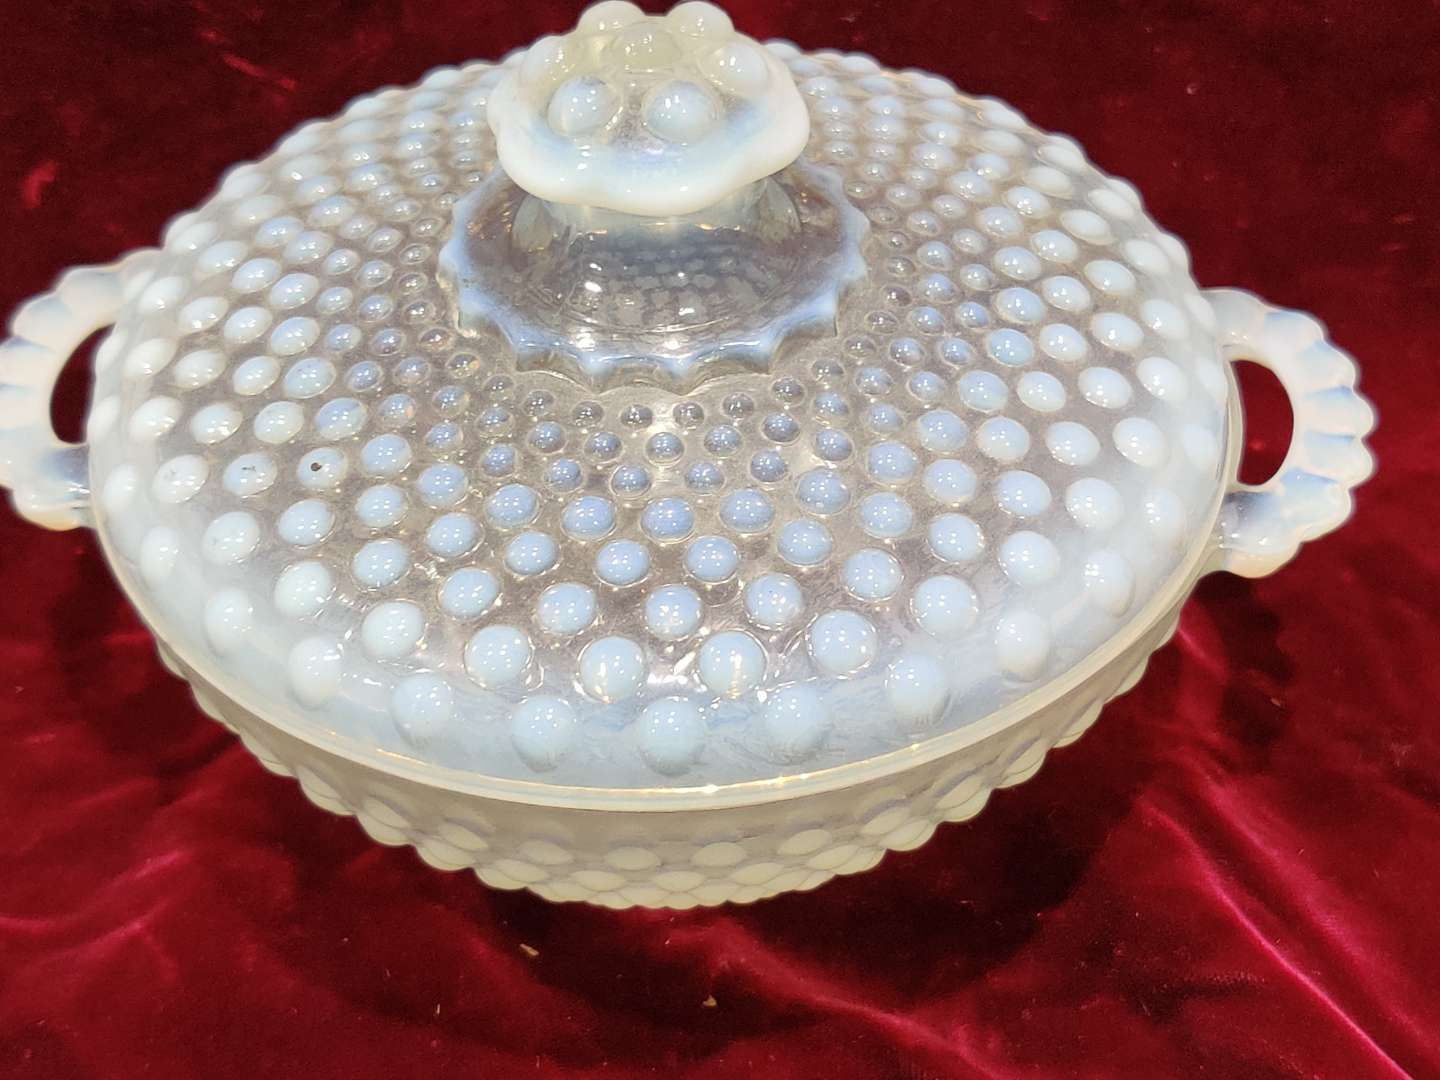 # 65 Fenton hobnail opalescent covered bowl dish two handles 7.5 in wide good condition